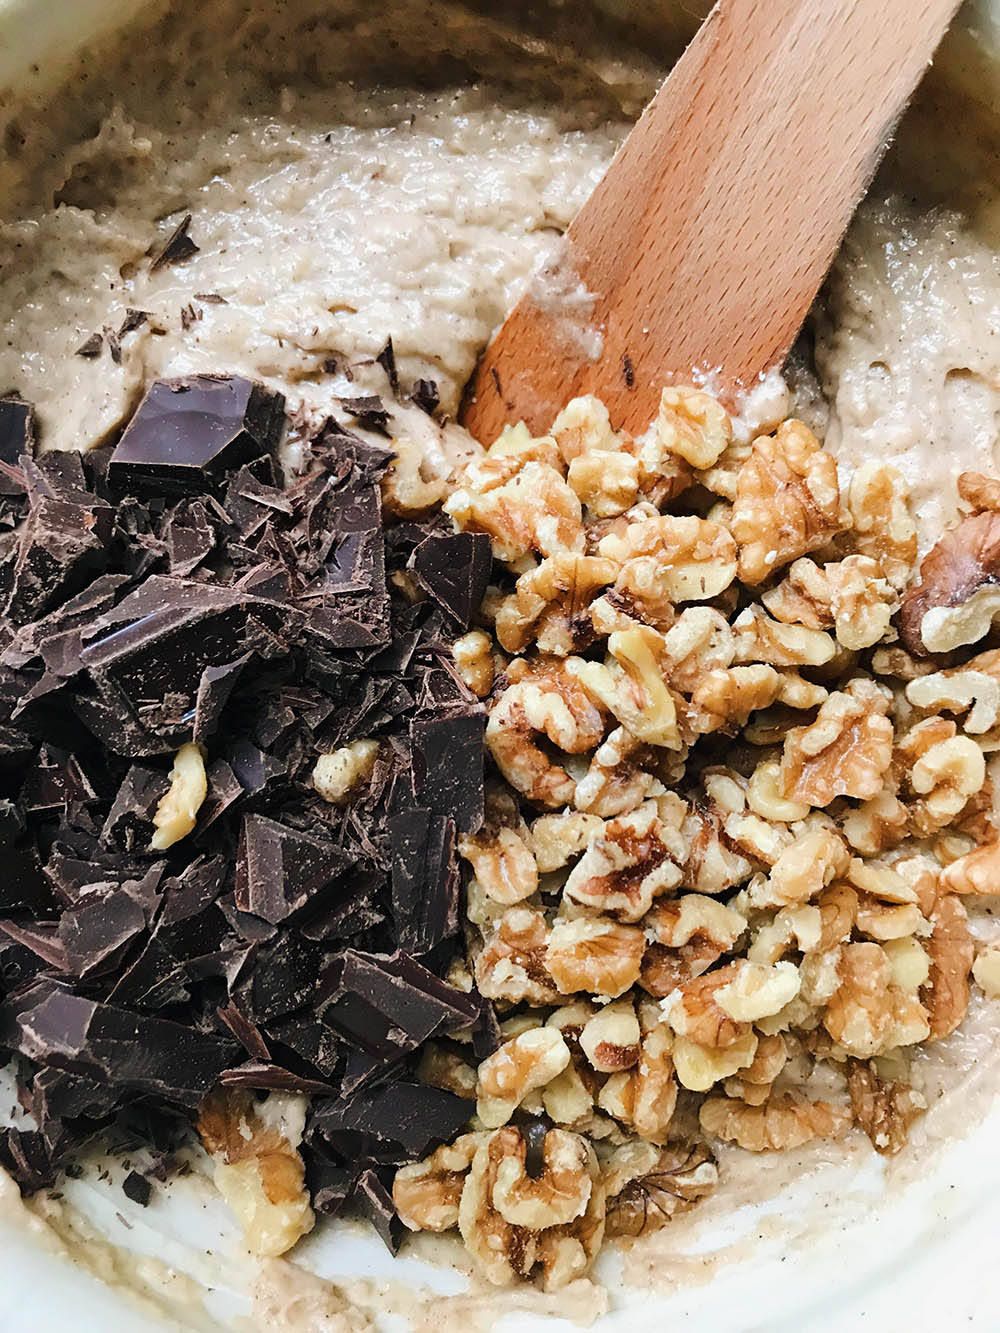 Banana bread batter with chopped chocolate and walnuts on top.